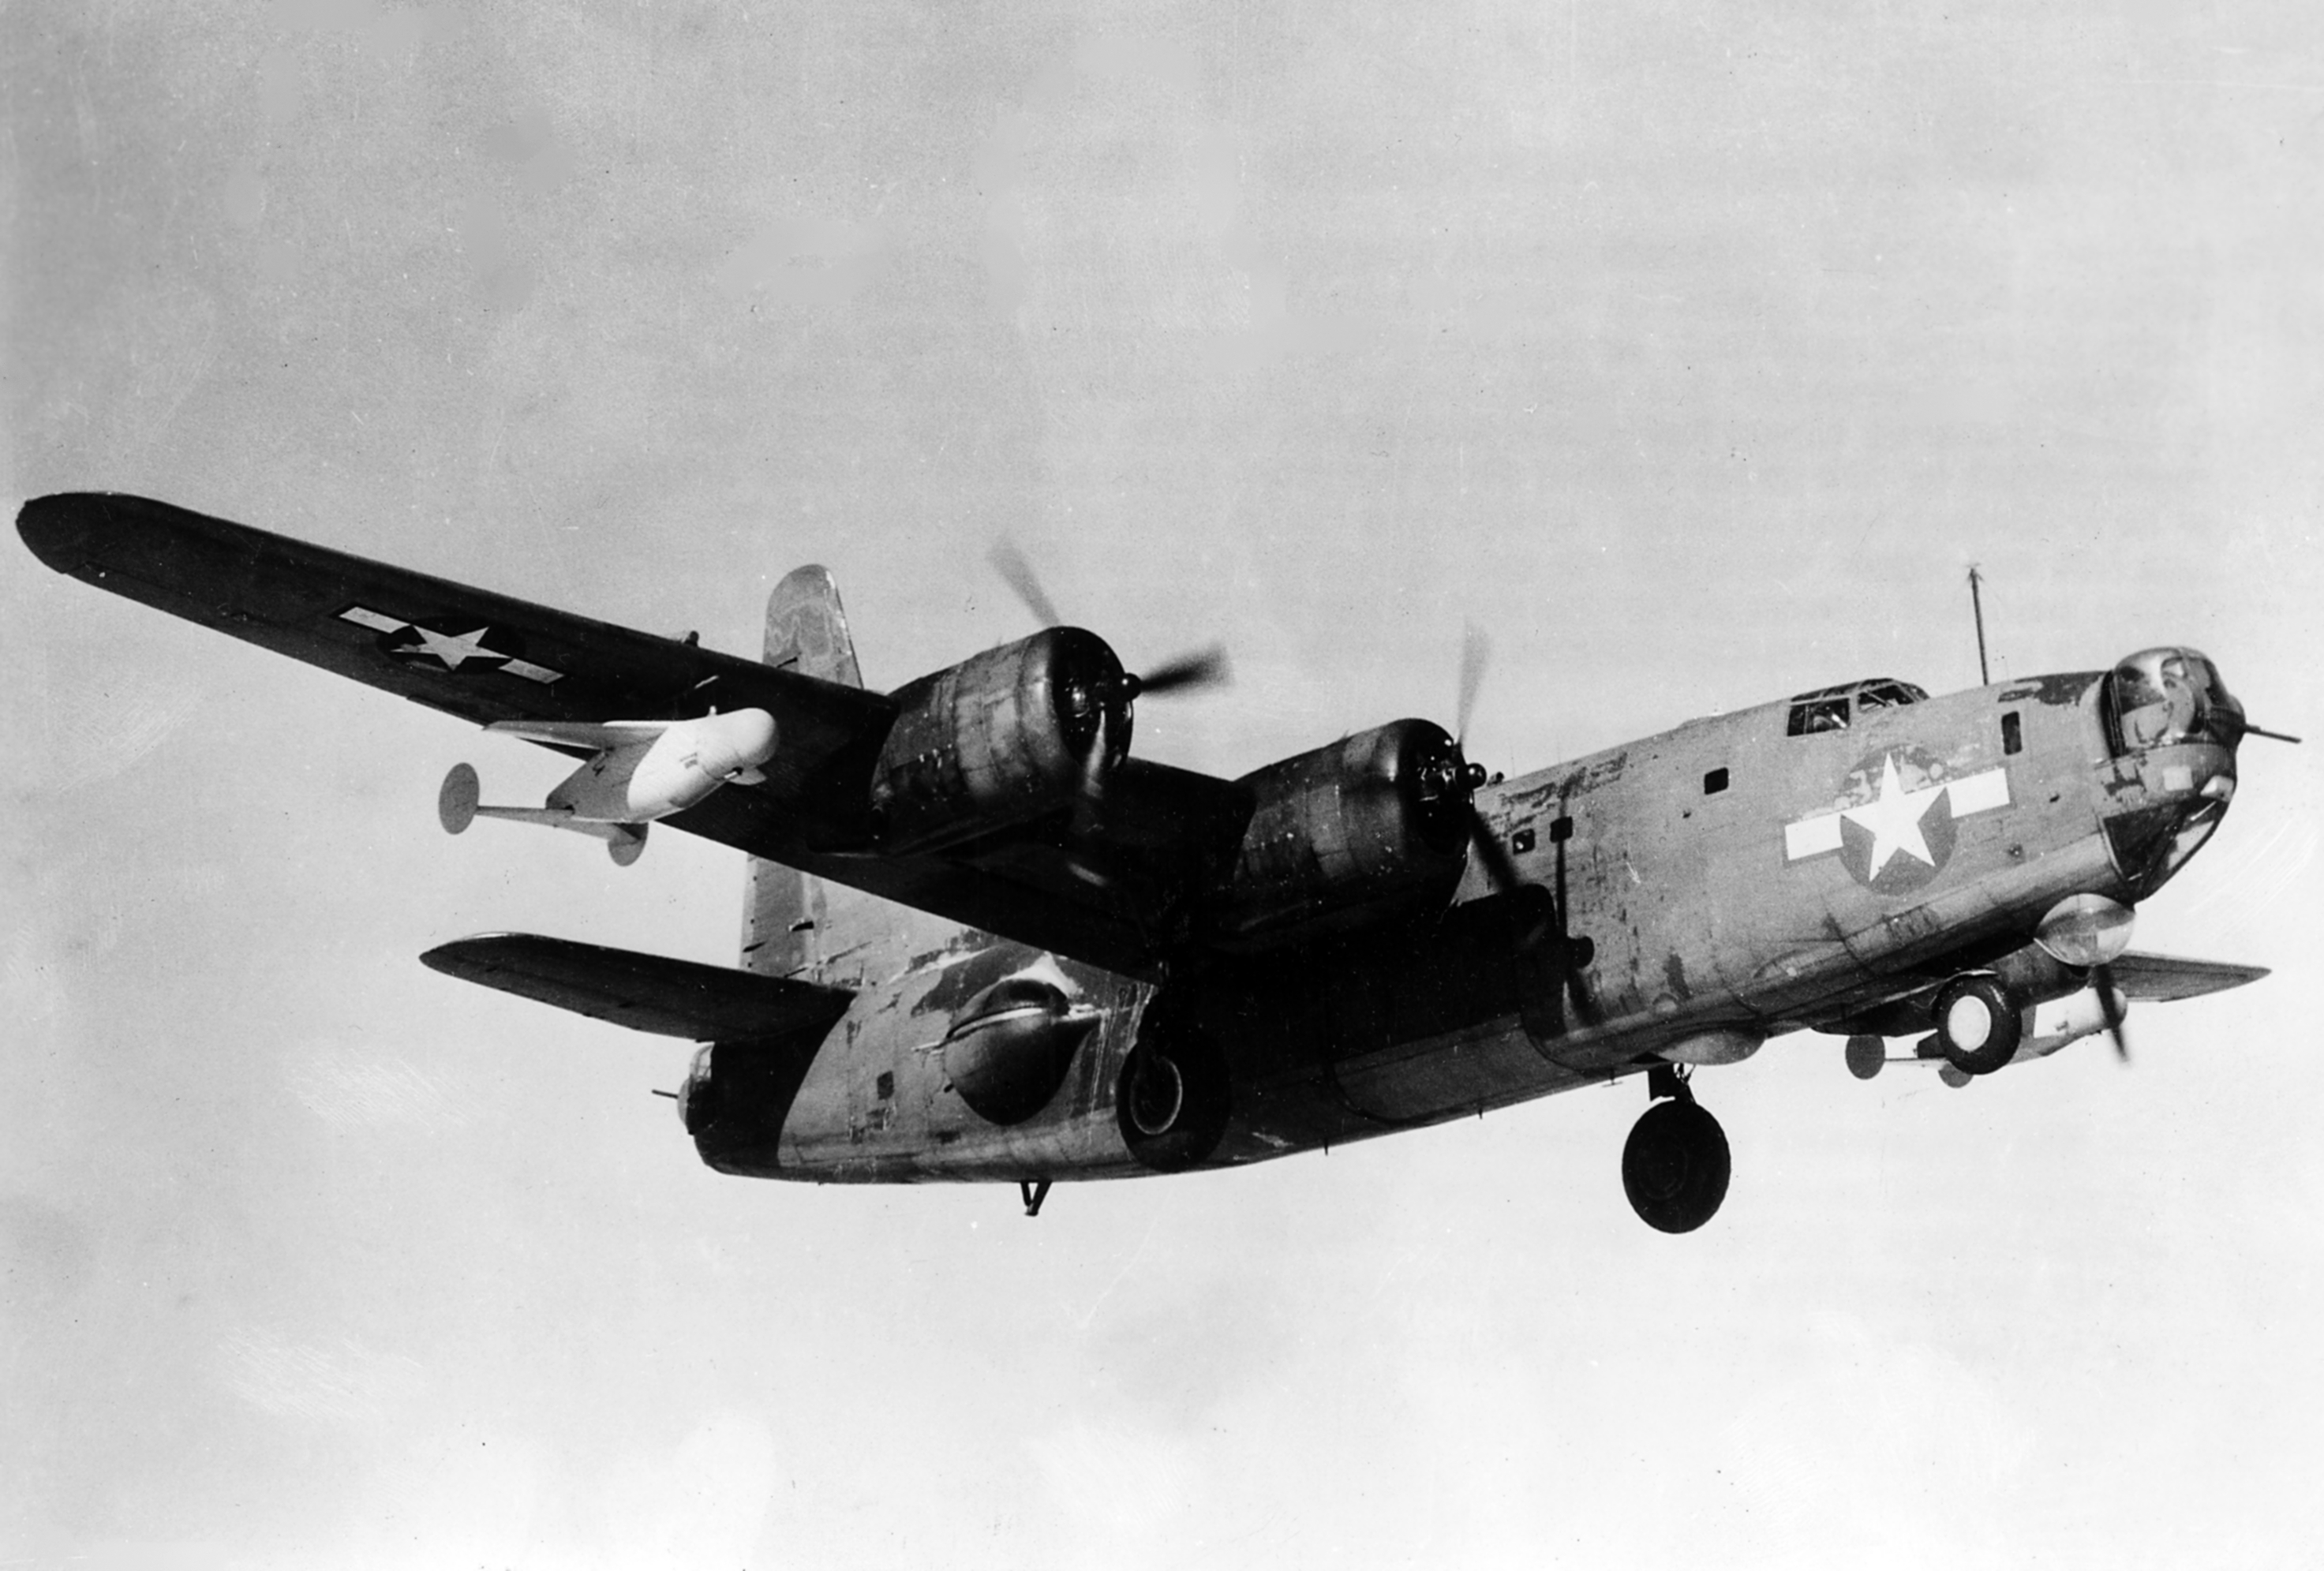 A U.S. Navy Consolidated PB4Y-2 Privateer taking off with two ASM-N-2 Bat glide bombs attached. ( Source U.S. Navy Naval Aviation News February 1946 via Wikpedia)